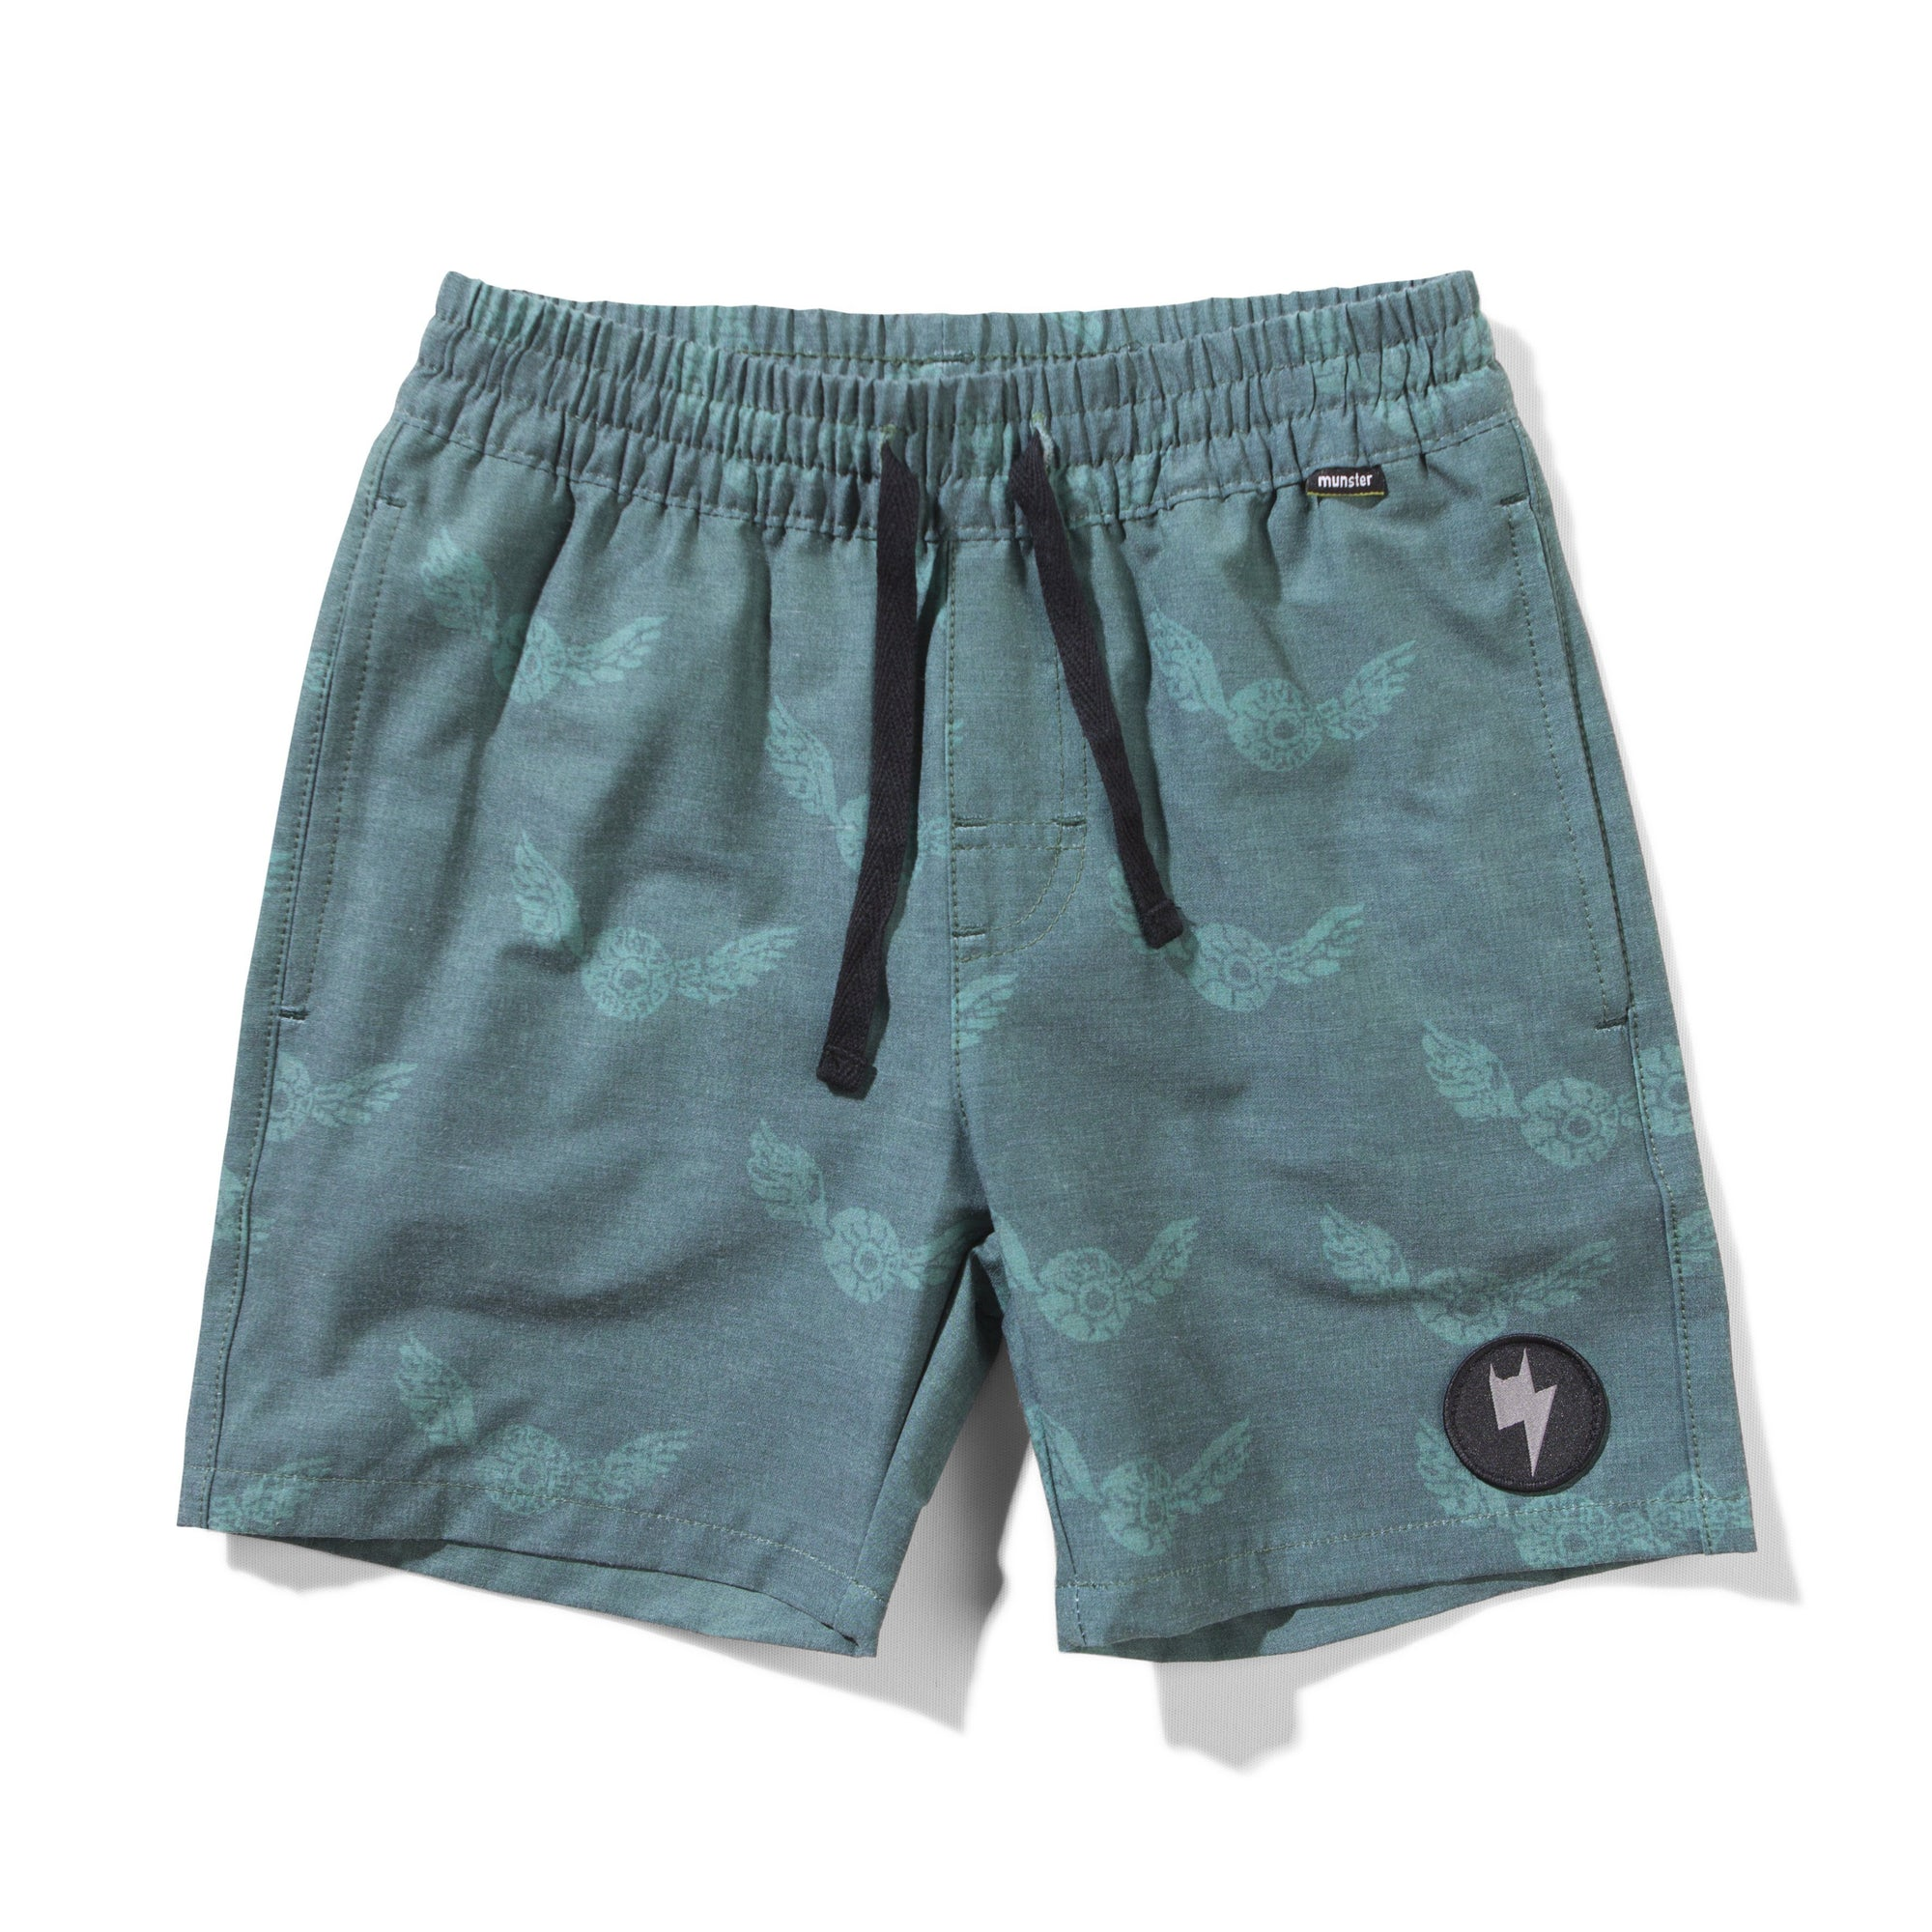 ISEEYOU BOARD SHORT BOYS SWIMWEAR MUNSTER 3 TEAL